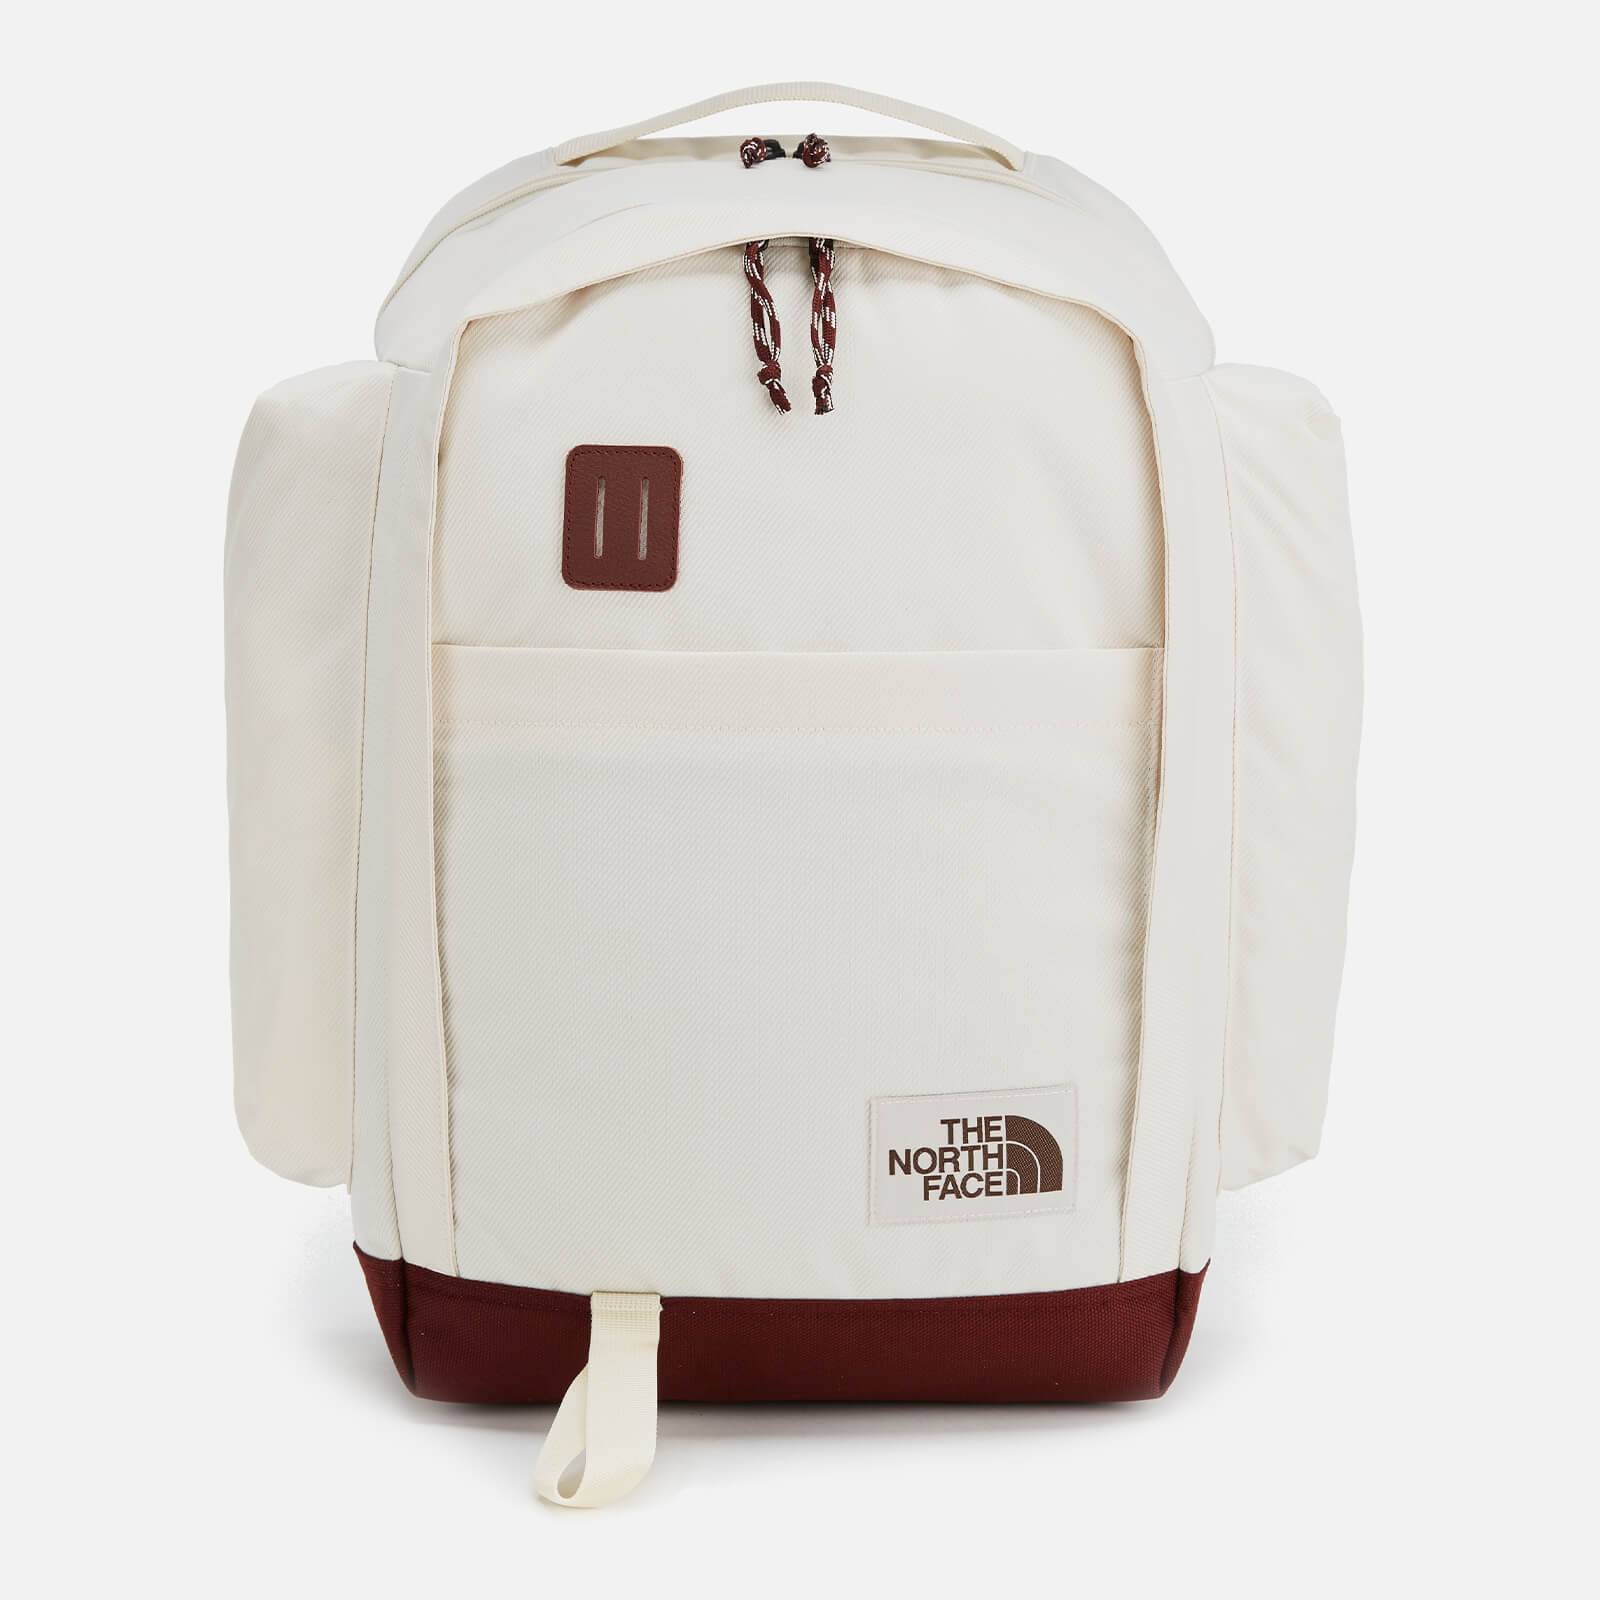 The North Face Men's Ruthsac Bag - Vintage White